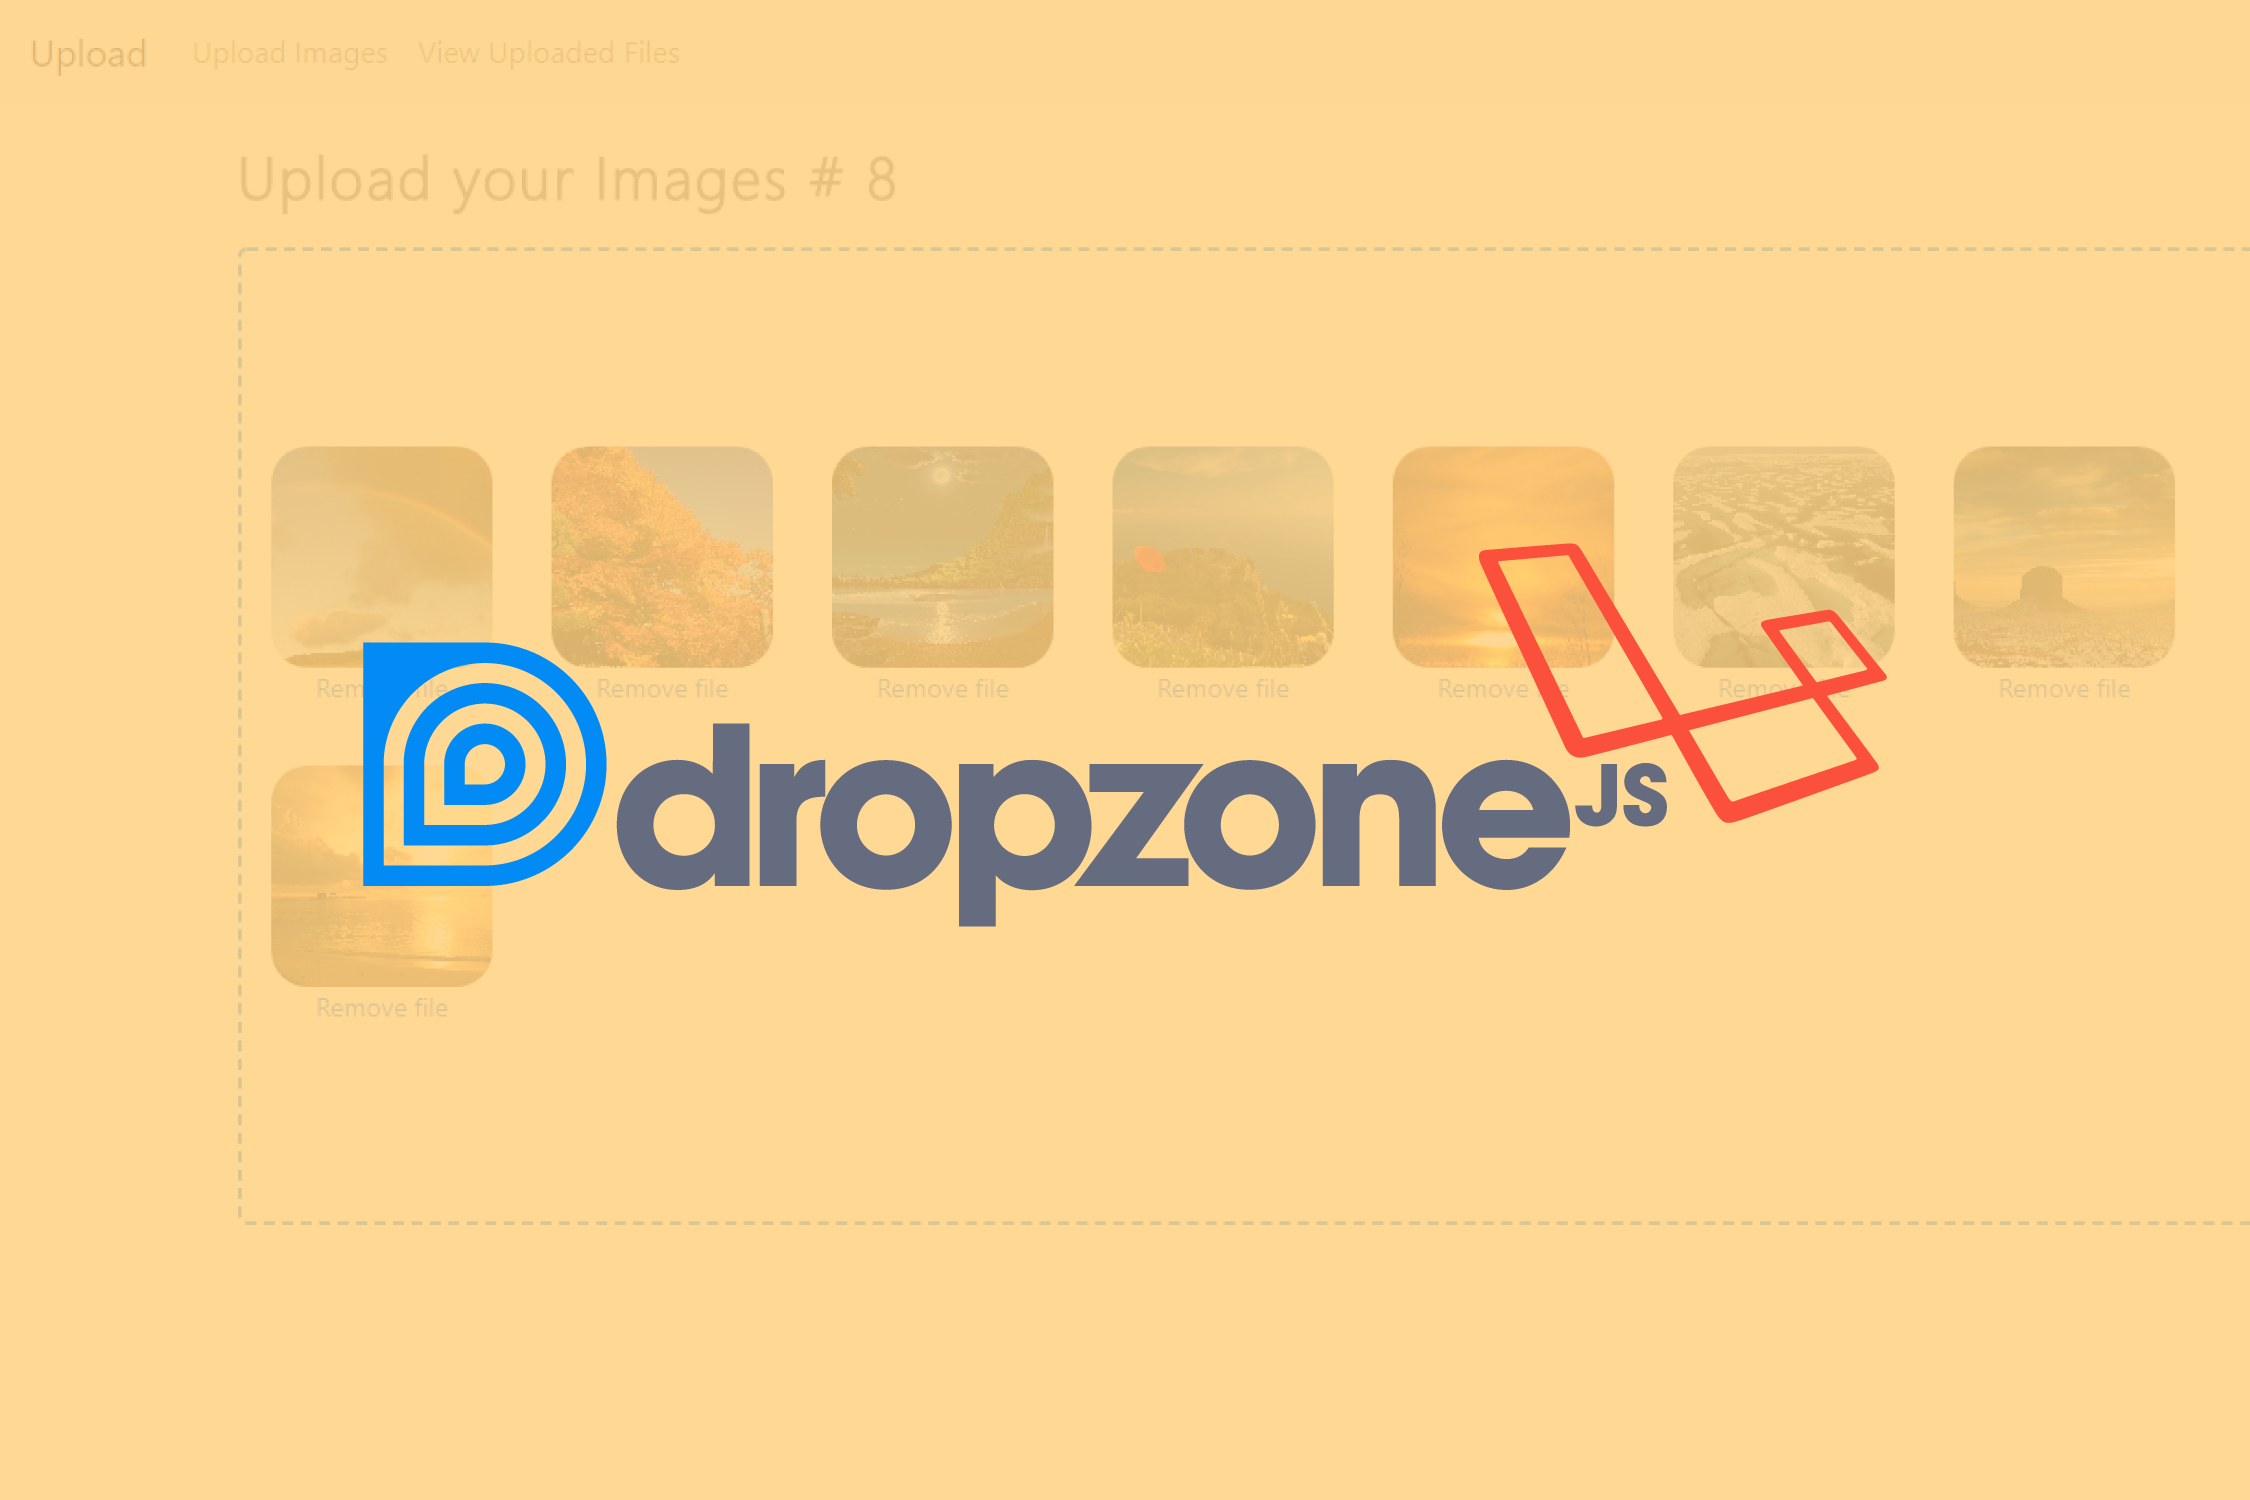 Laravel 5 5 and Dropzone js: Uploading Images with removal